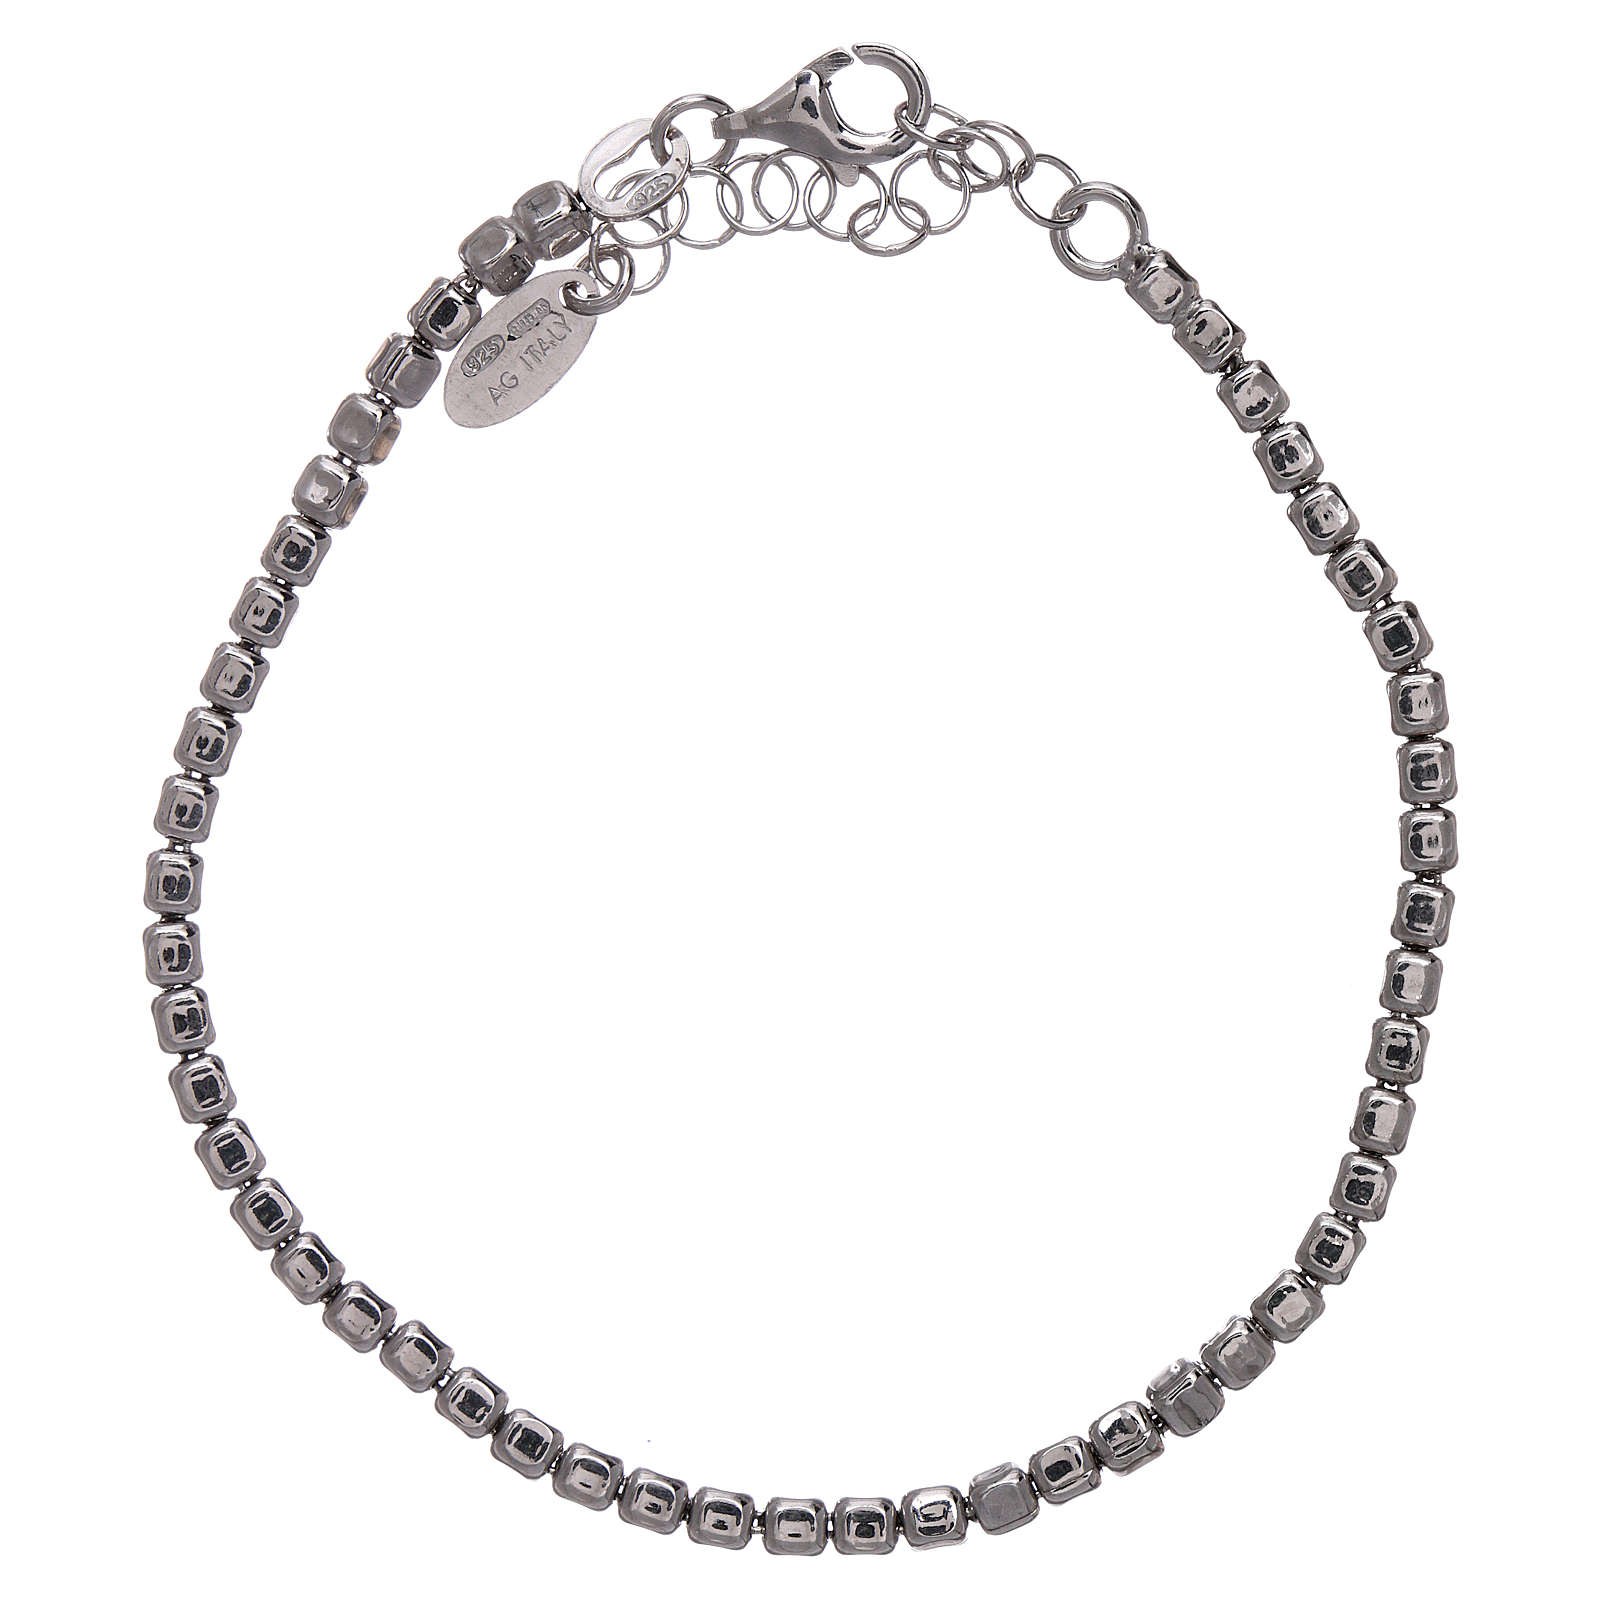 AMEN Bracelet in 925 sterling silver with rhodium nuggets 4